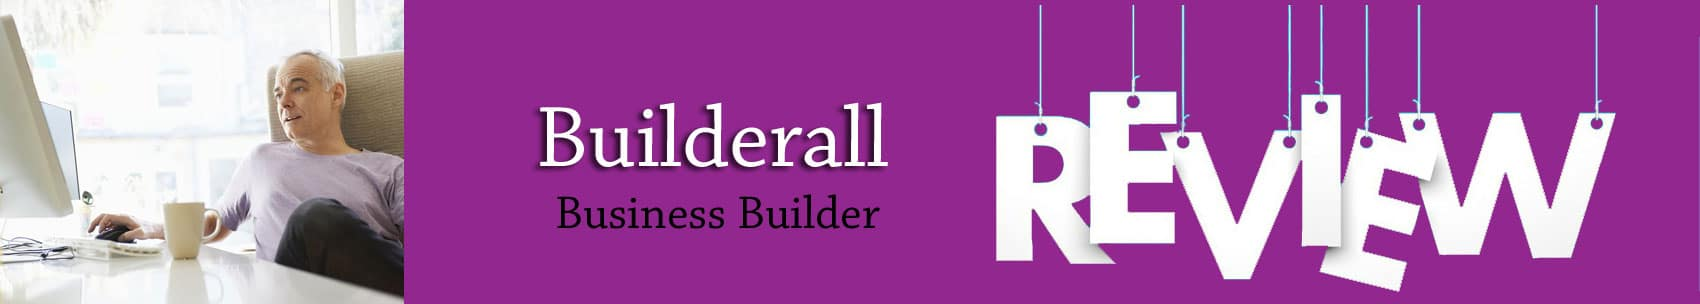 the-builder all-review-banner